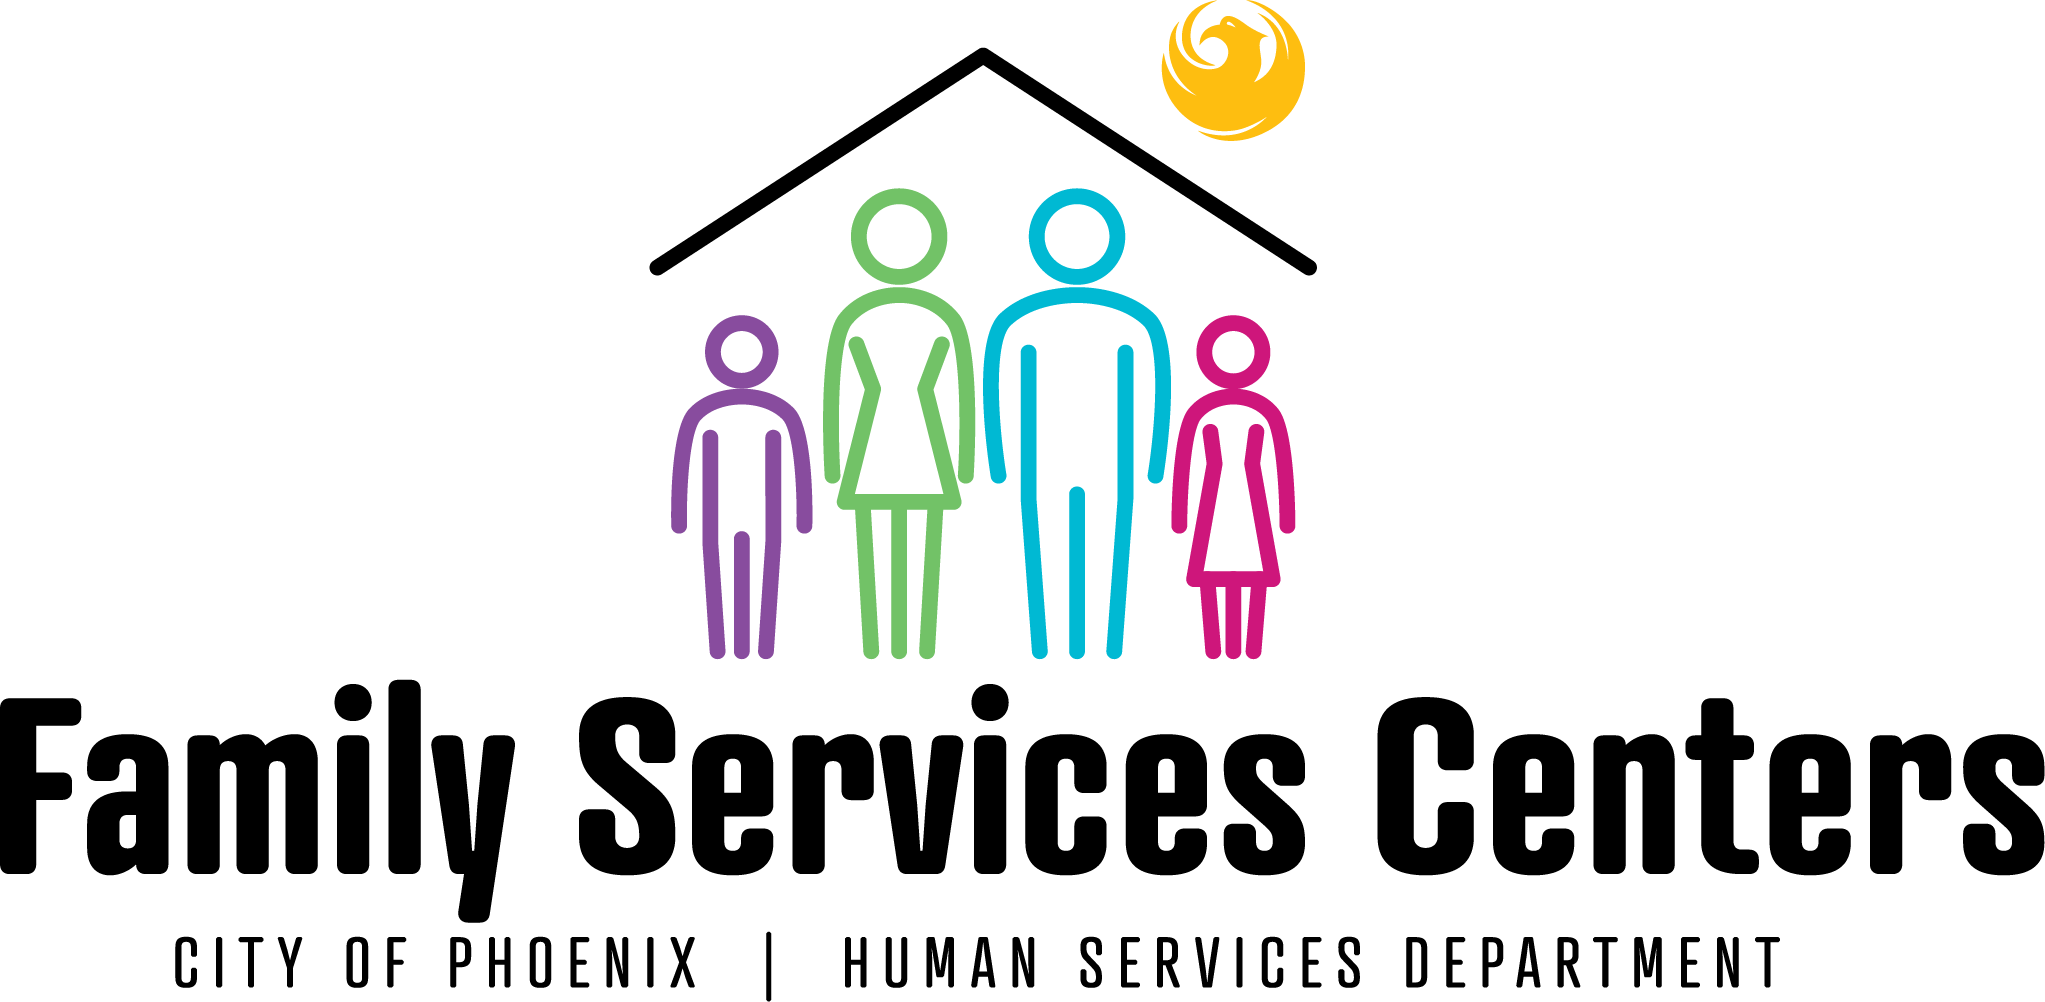 Family services centers logo